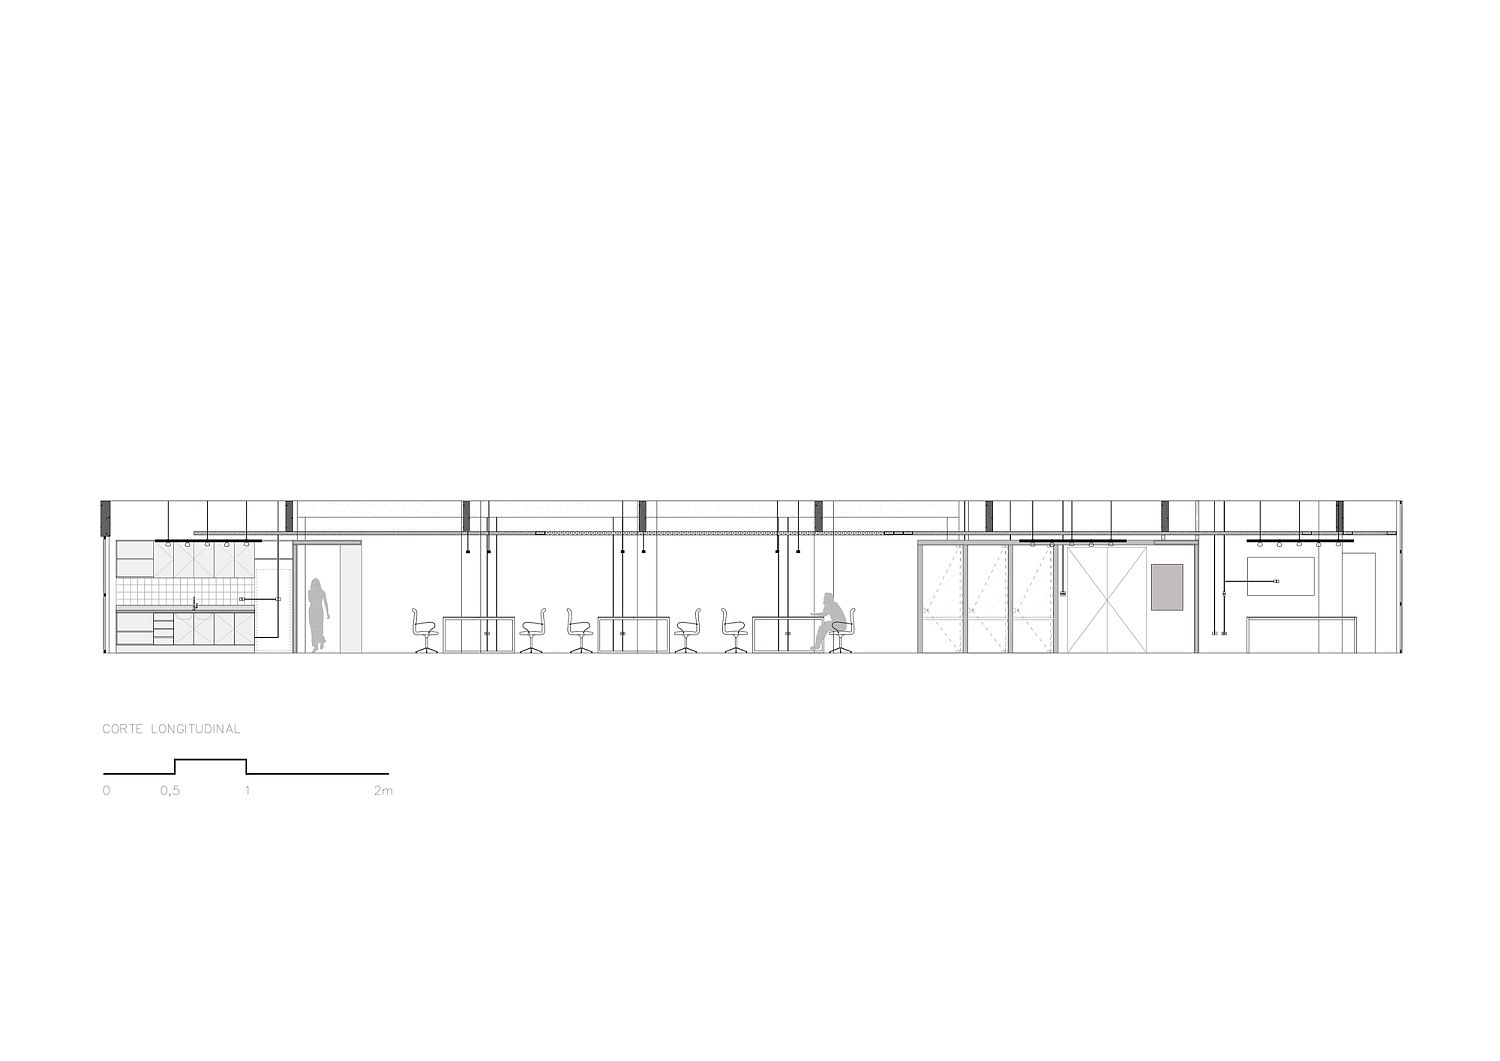 Sectional view of the office workspace design